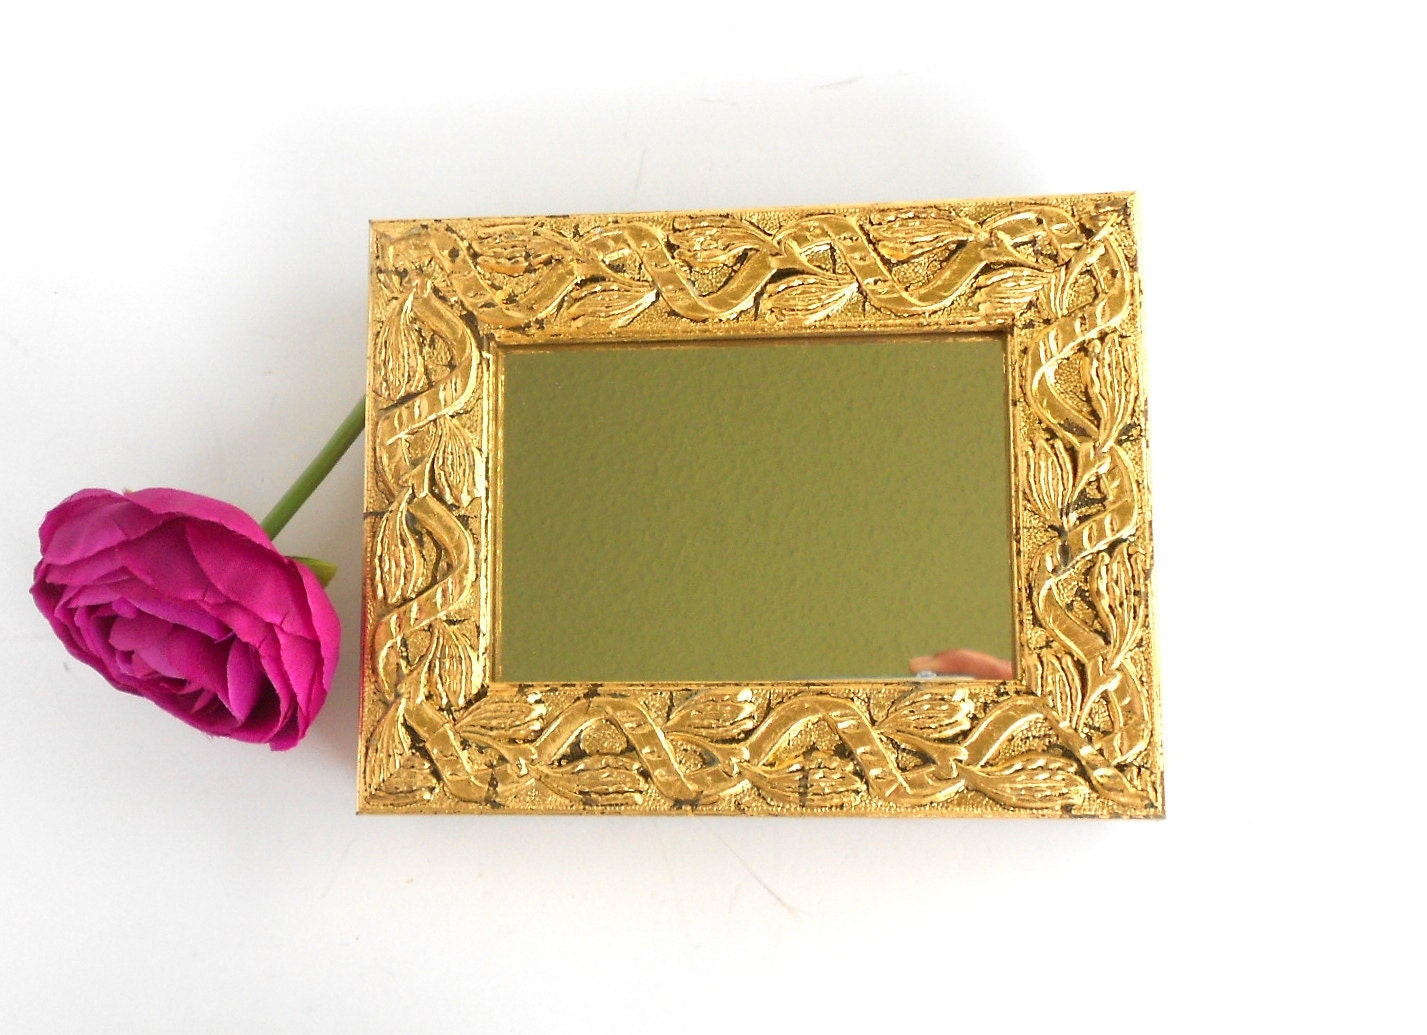 Wall Mirror Decorative Wall Mirror Gold Leaf Mirror Ornate